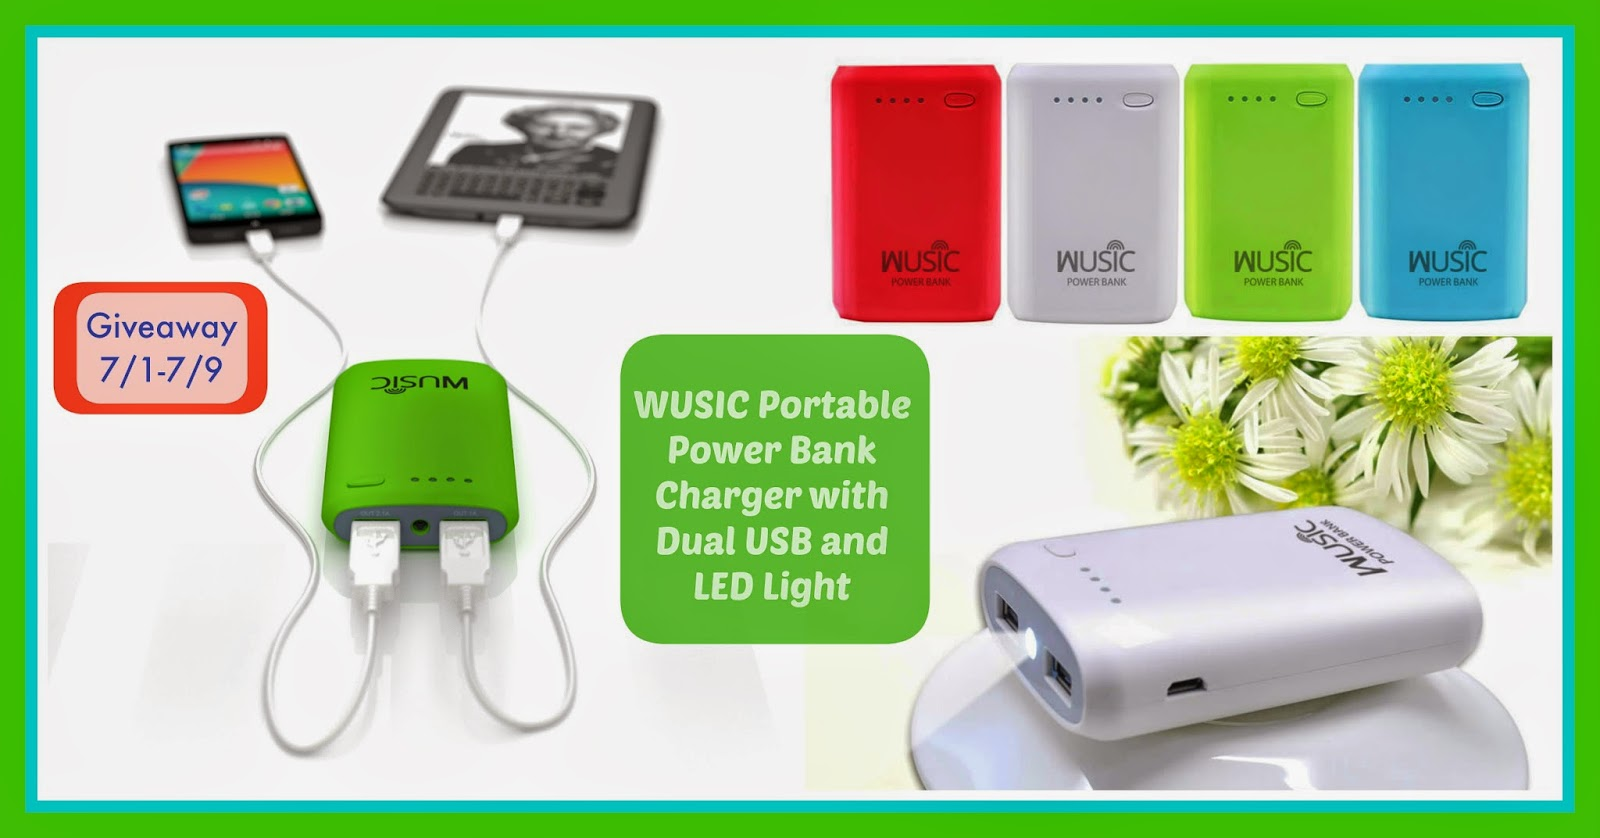 WUSIC Portable Power Bank Charger with Dual USB and LED Light Giveaway